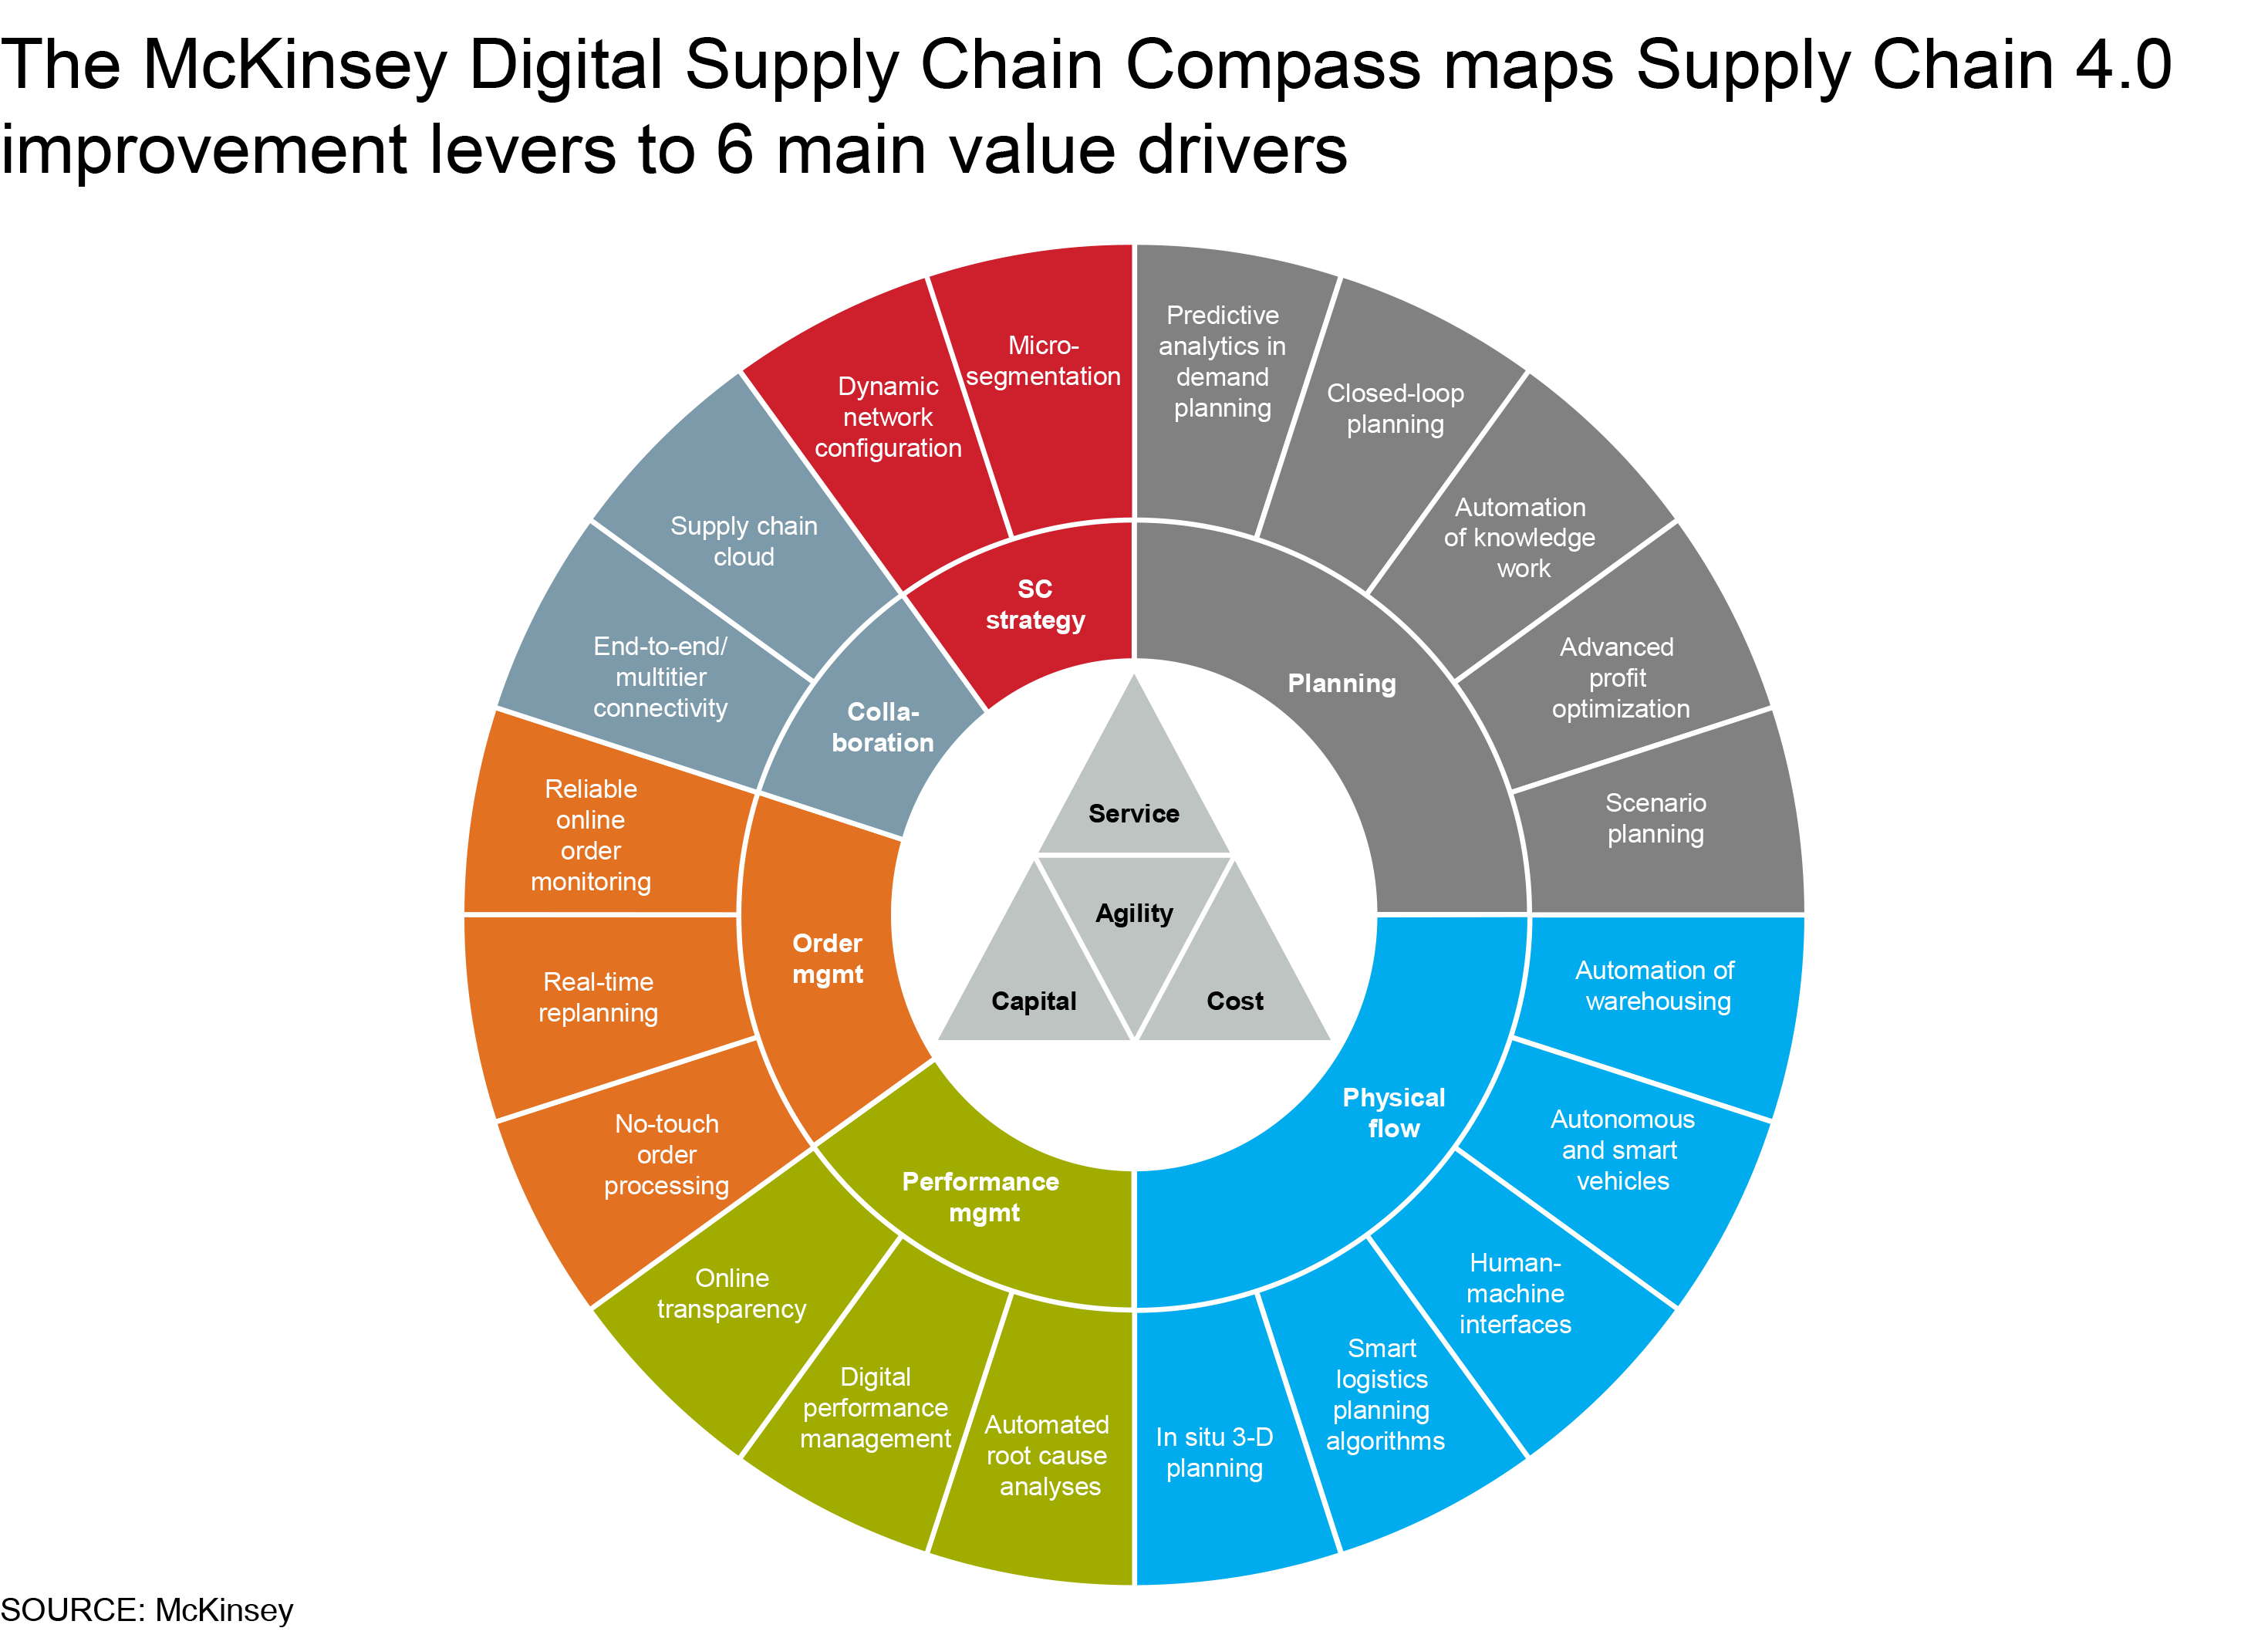 Supply Chain Compass